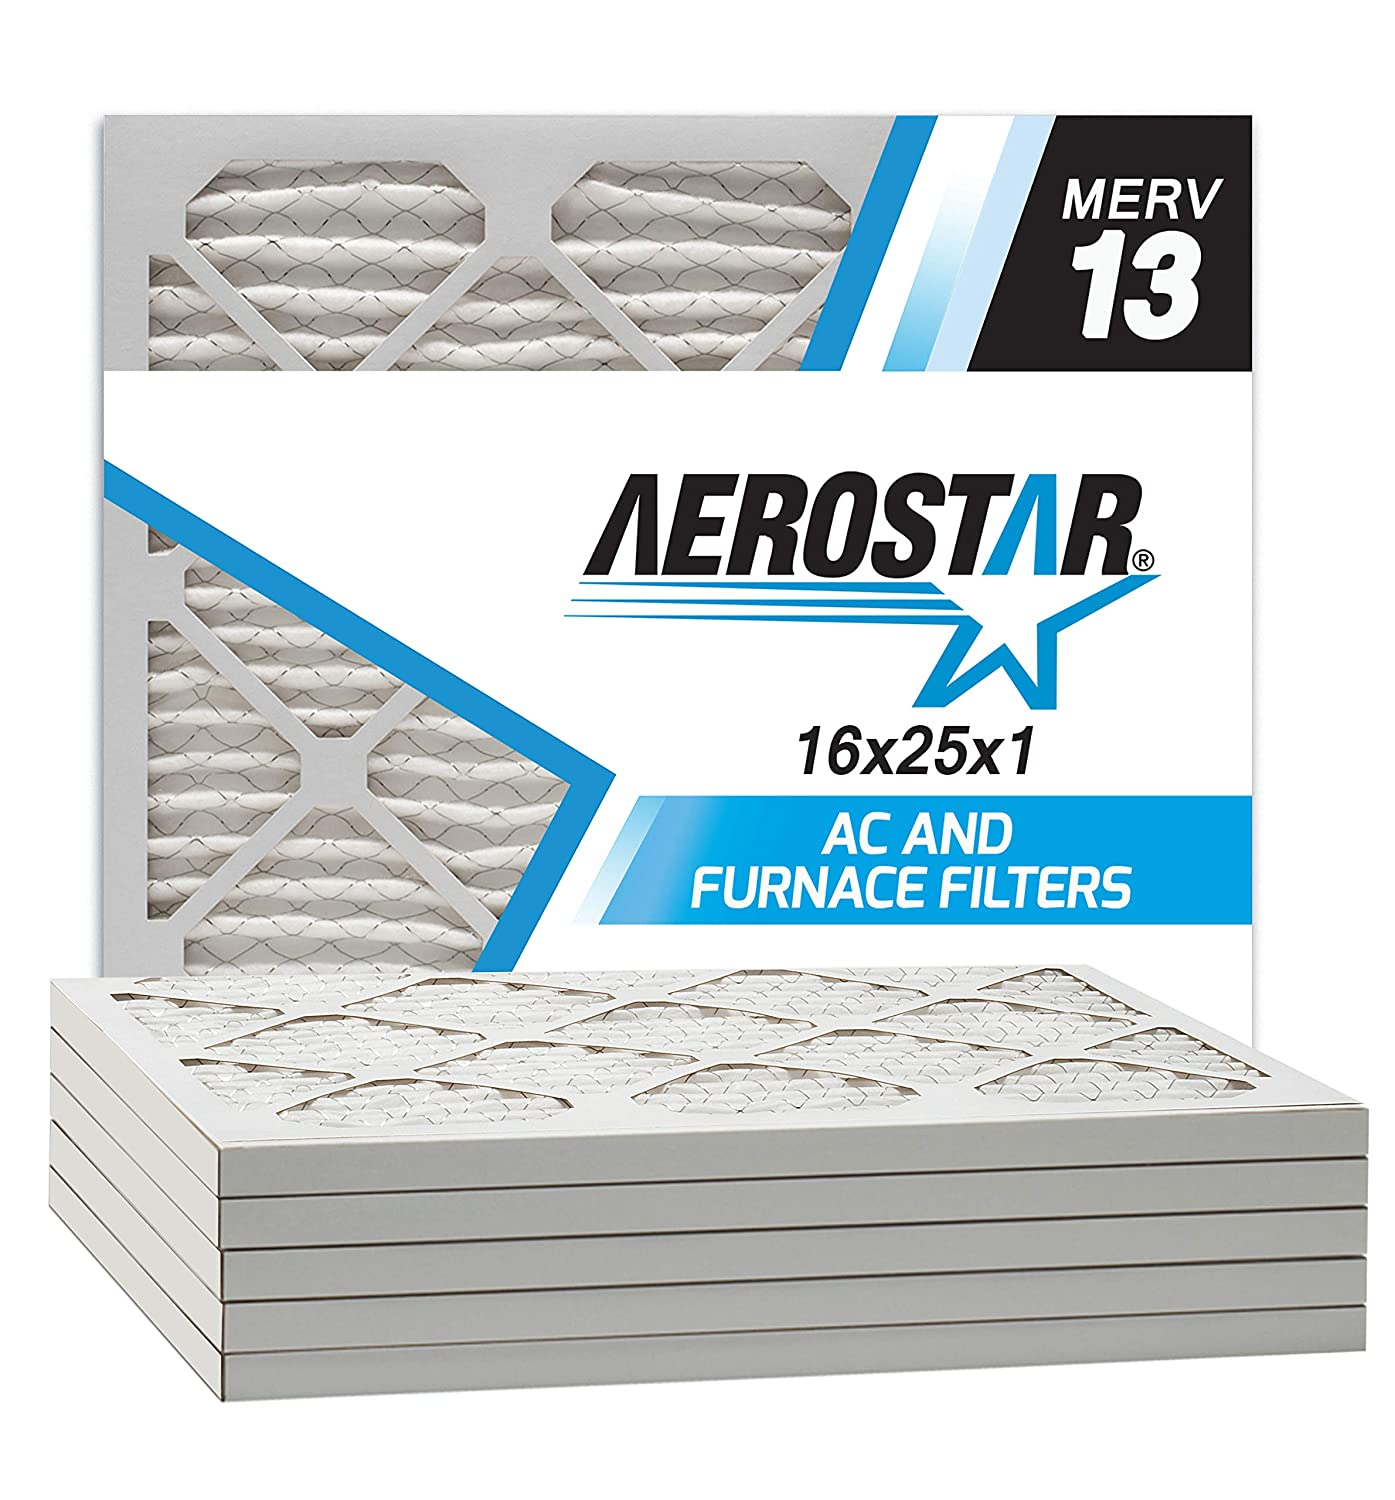 Aerostar 16x25x1 MERV 13 Pleated Air Filter, Made in the USA, 6-Pack